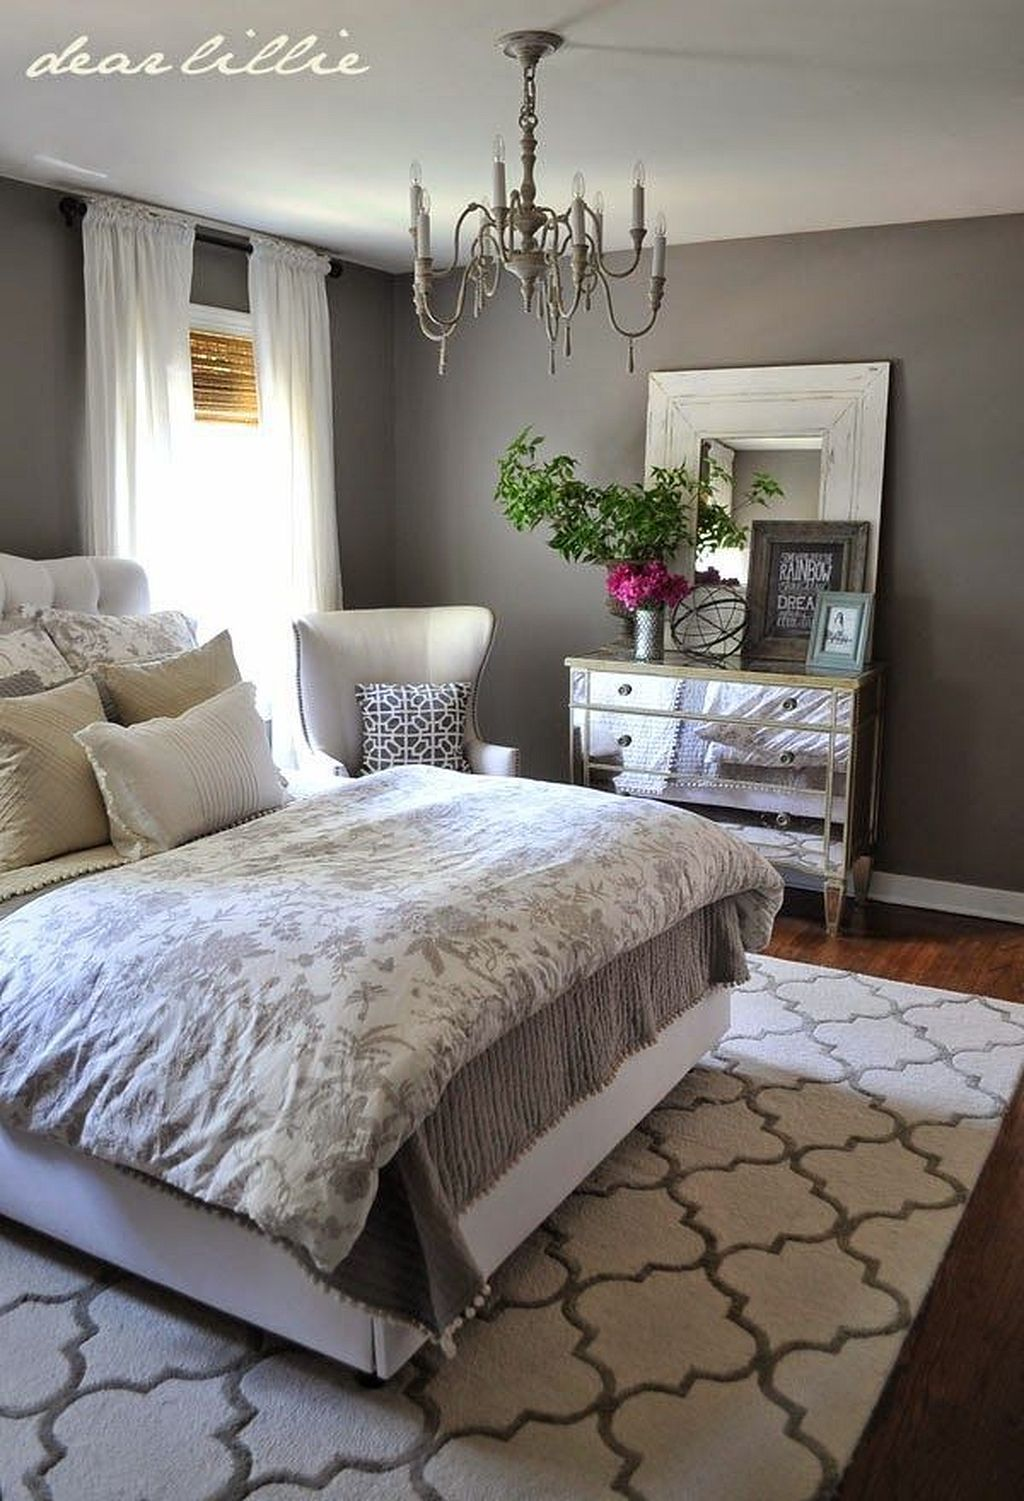 20+ Charming Small Master Bedroom Decorating Ideas | Bedrooms ... on spa bedroom ideas, bedroom painting ideas, very small bedroom ideas, guest bedroom ideas, moroccan bedroom ideas, small master bedroom remodel, bathroom ideas, small master bedroom makeover, ikea bedroom ideas, antique bedroom ideas, romantic bedroom ideas, cool bedroom ideas, small boys bedrooms, small bedroom design, bedroom mirror ideas, master bedroom color ideas, bedroom design ideas, black and white bedroom ideas, purple bedroom ideas, small bedroom setup ideas,